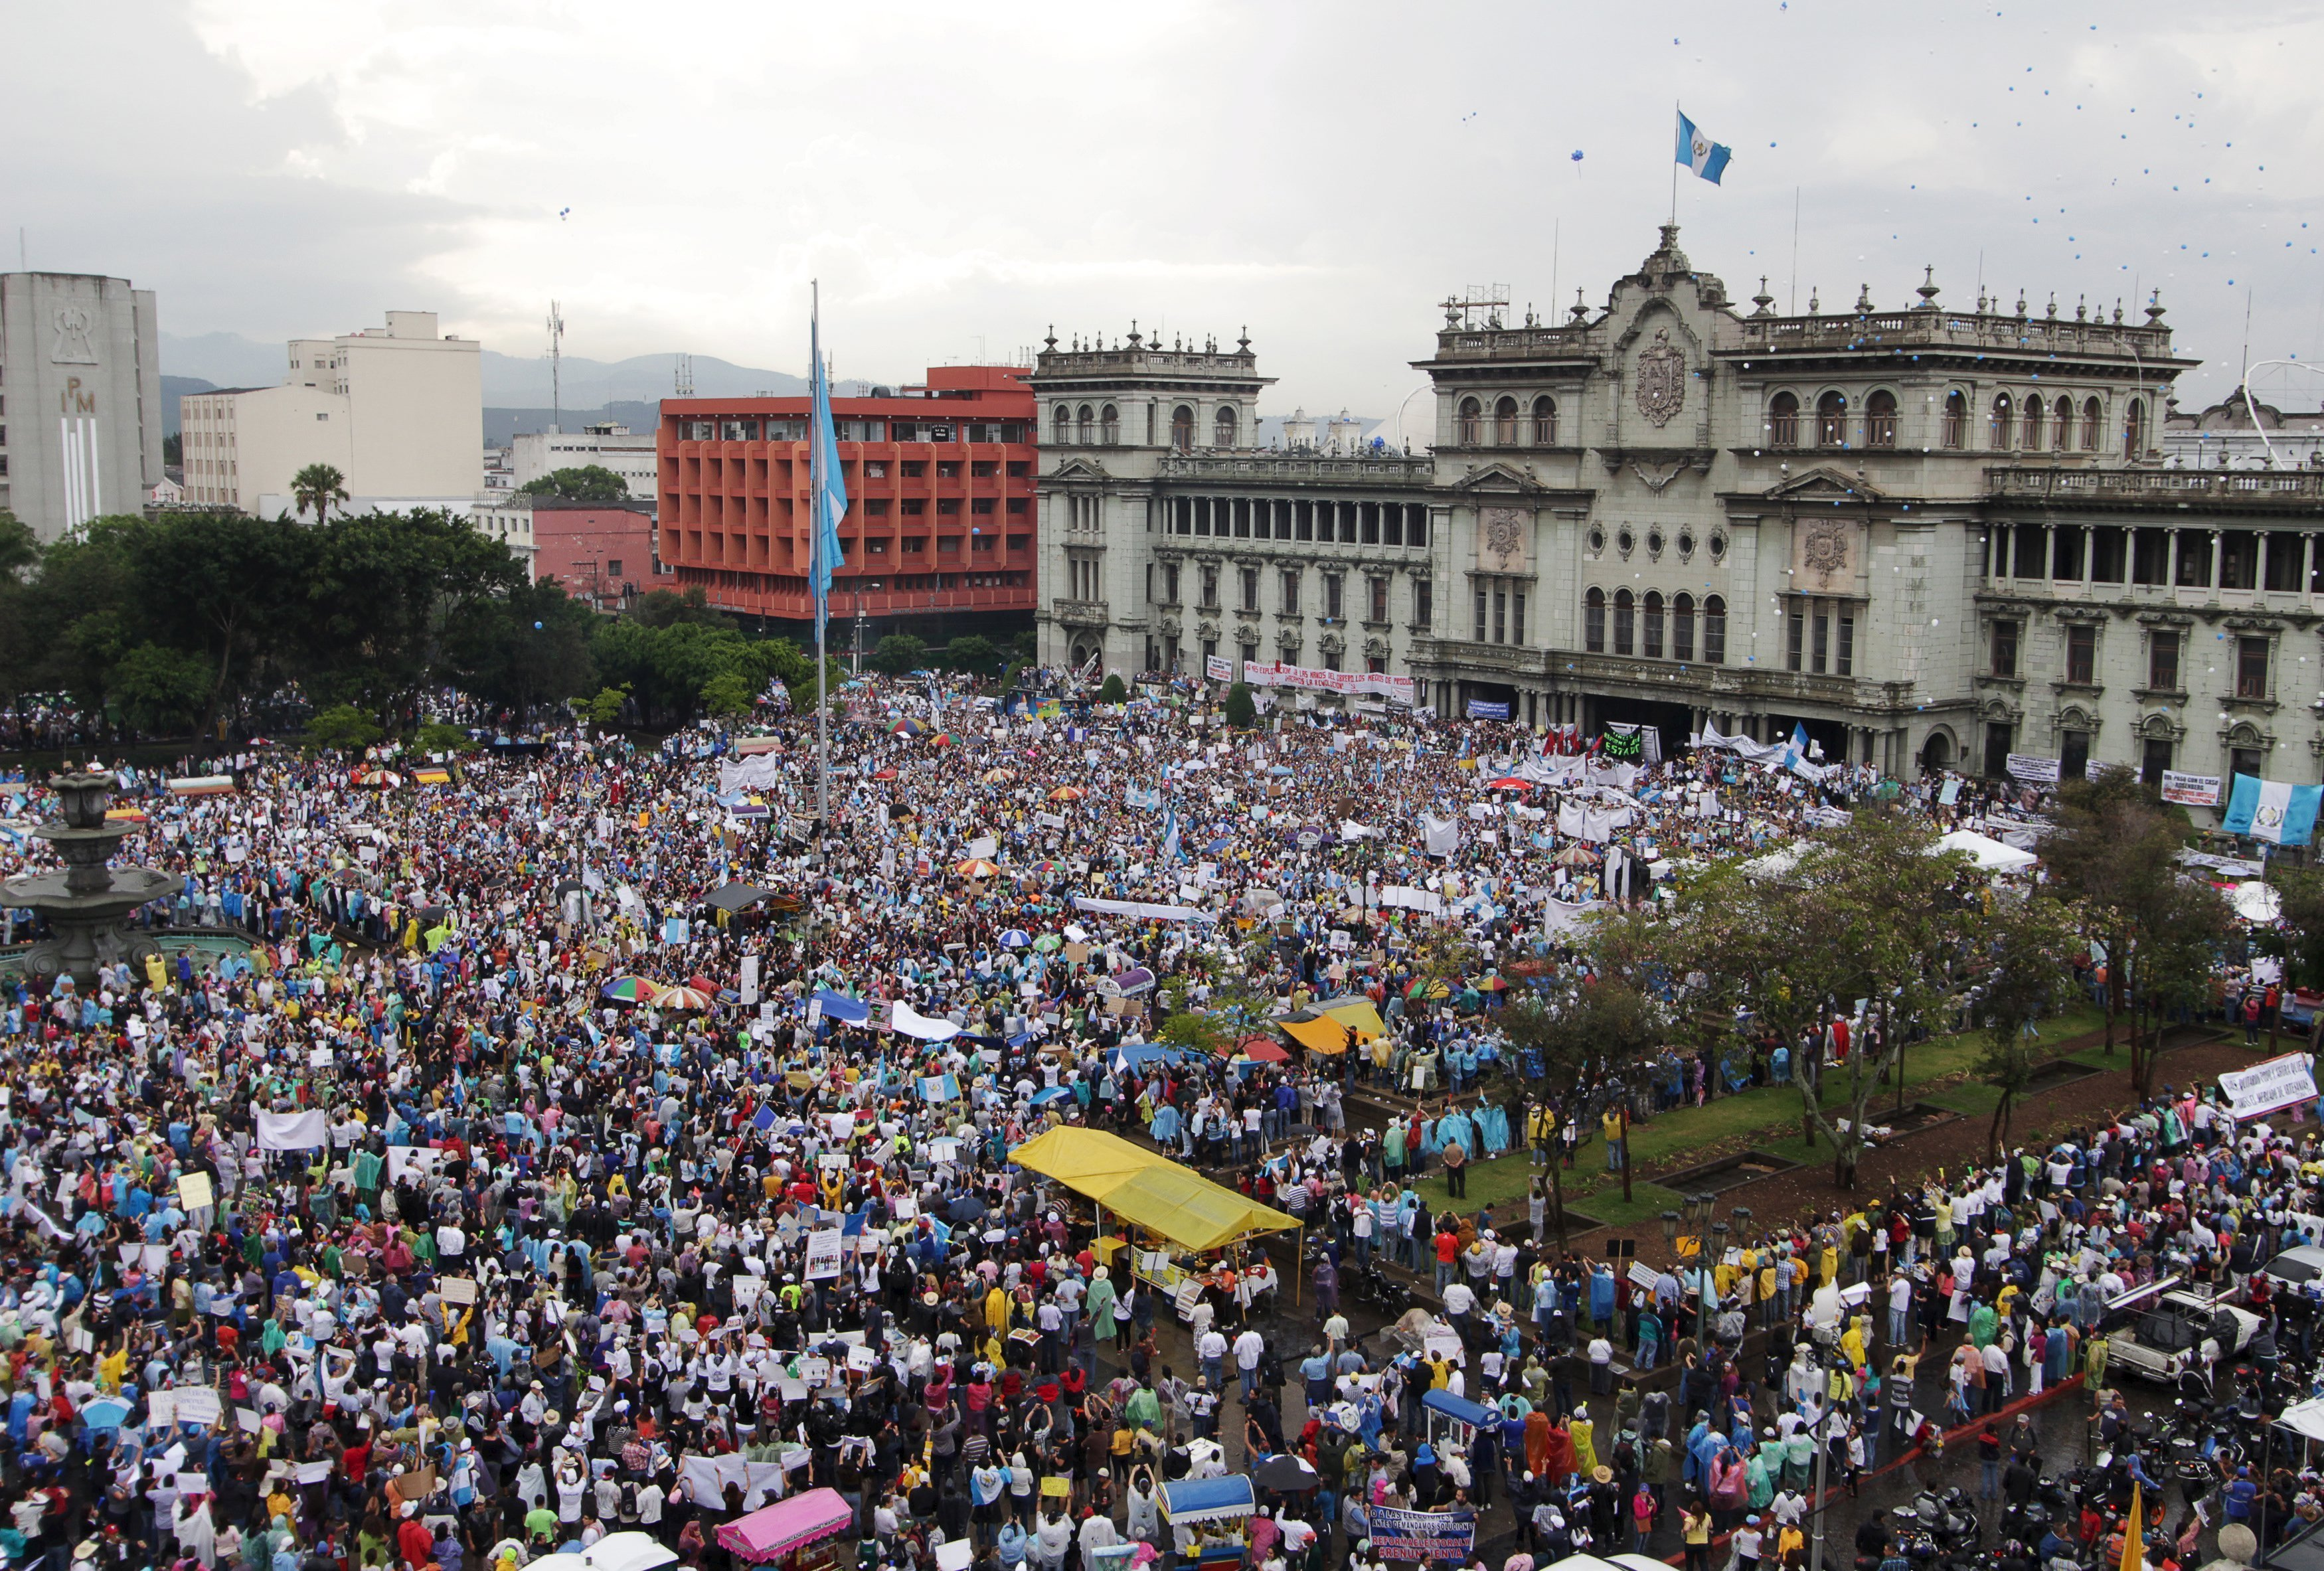 An aerial view shows protesters at a demonstration demanding the resignation of Guatemalan President Otto Perez Molina, in downtown Guatemala City, May 16, 2015